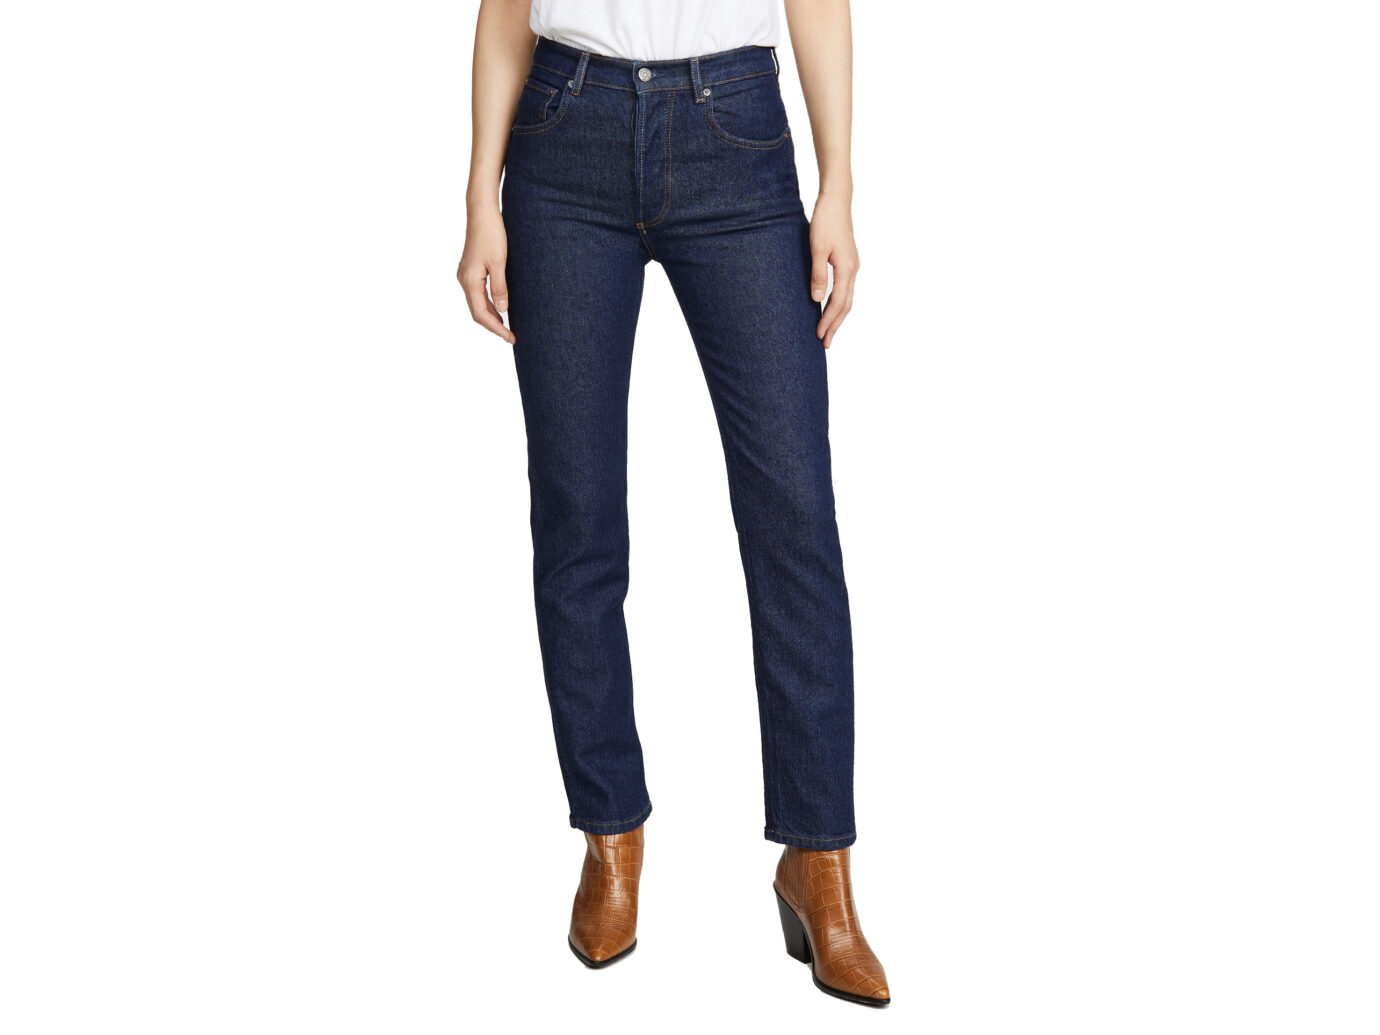 Boyish The Dempsey High-Rise Straight Leg Jeans